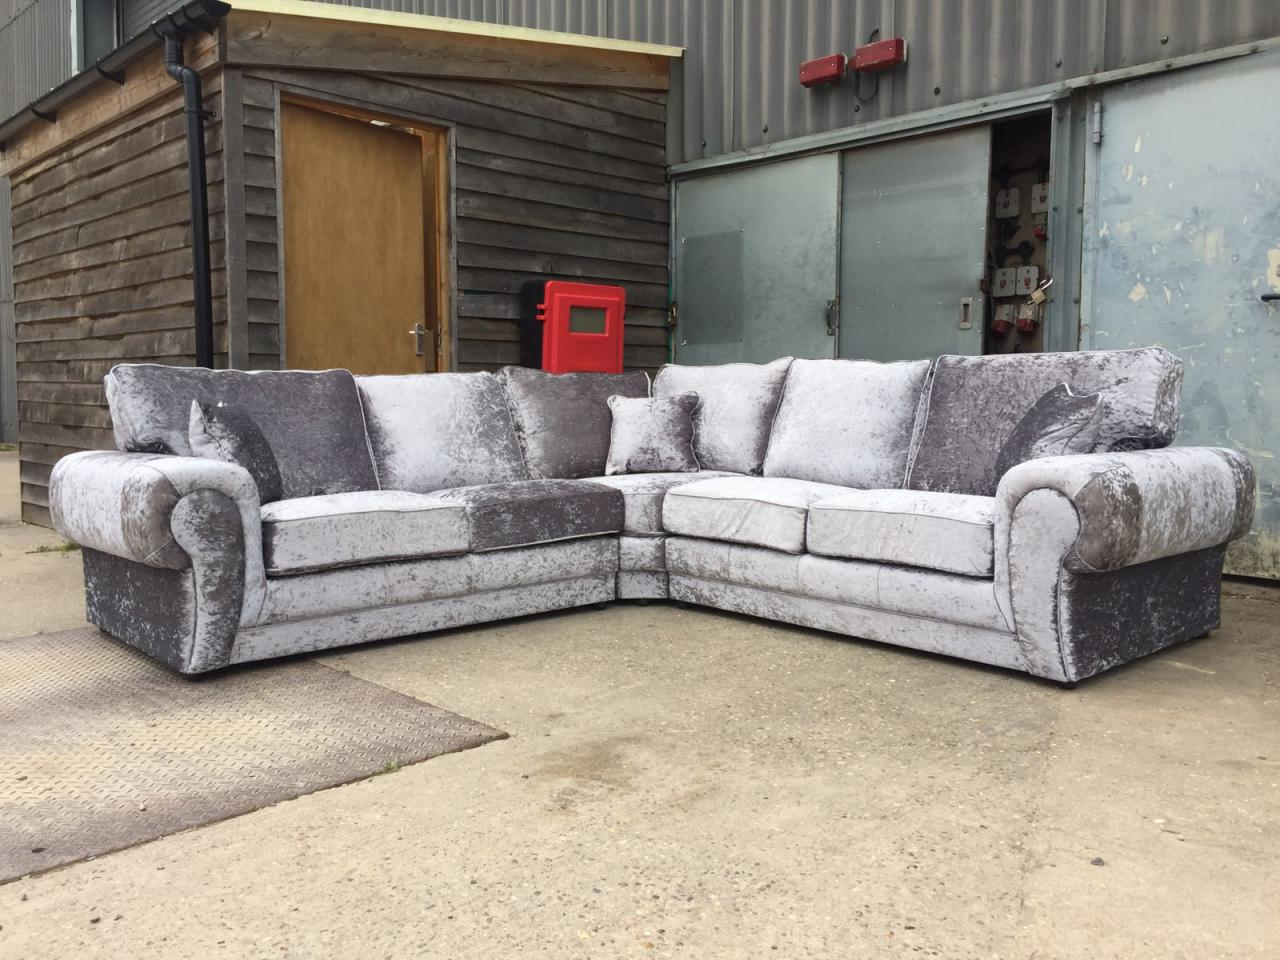 huge sale new tango crushed velvet corner sofa black and silver so cheap